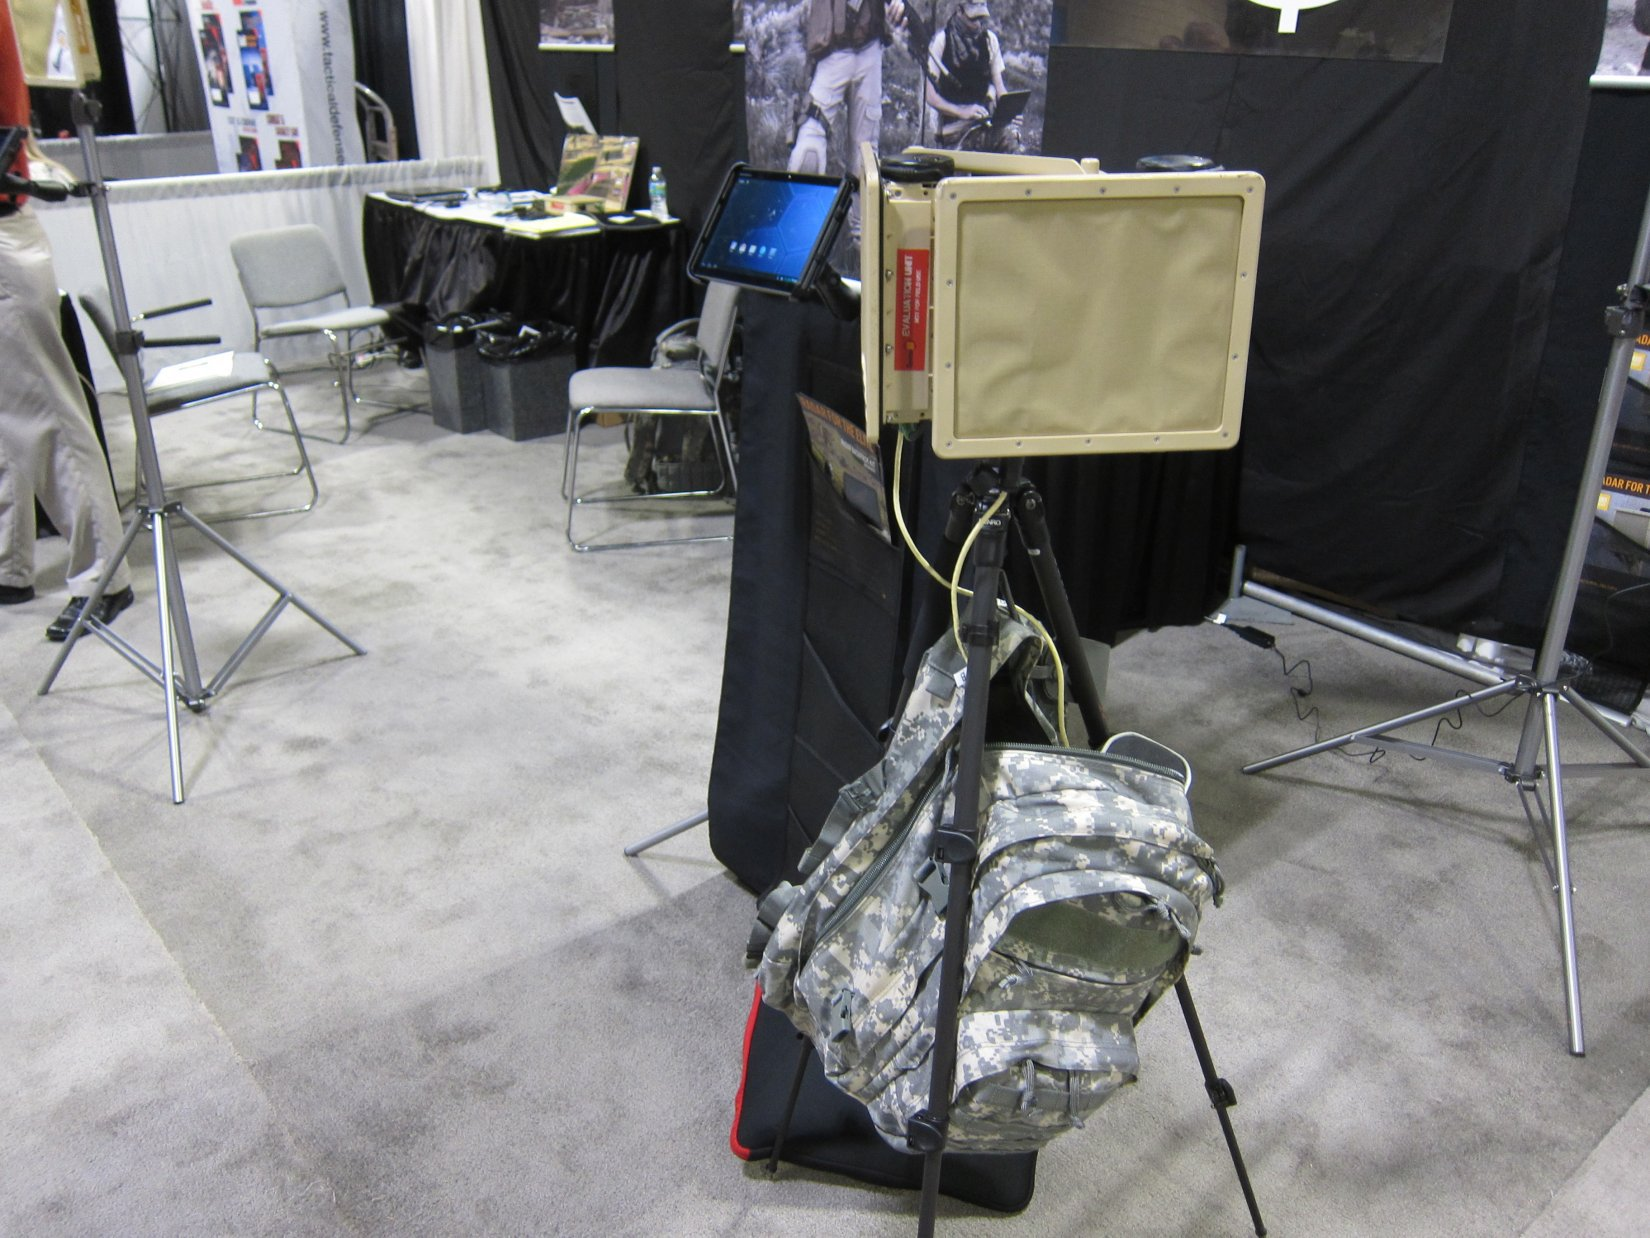 """SpotterRF Radar Backpack Kit (or """"Backpack Radar Kit""""): Compact, Lightweight Backpackable/Manpackable Ground Moving Target Indicator (GMTI) Motion-Tracking Perimeter Surveillance Radar (PSR) System for Military Special Operations Forces (SOF) Perimeter Security and Force Protection Applications (SOFIC 2012 Demo Video!)"""